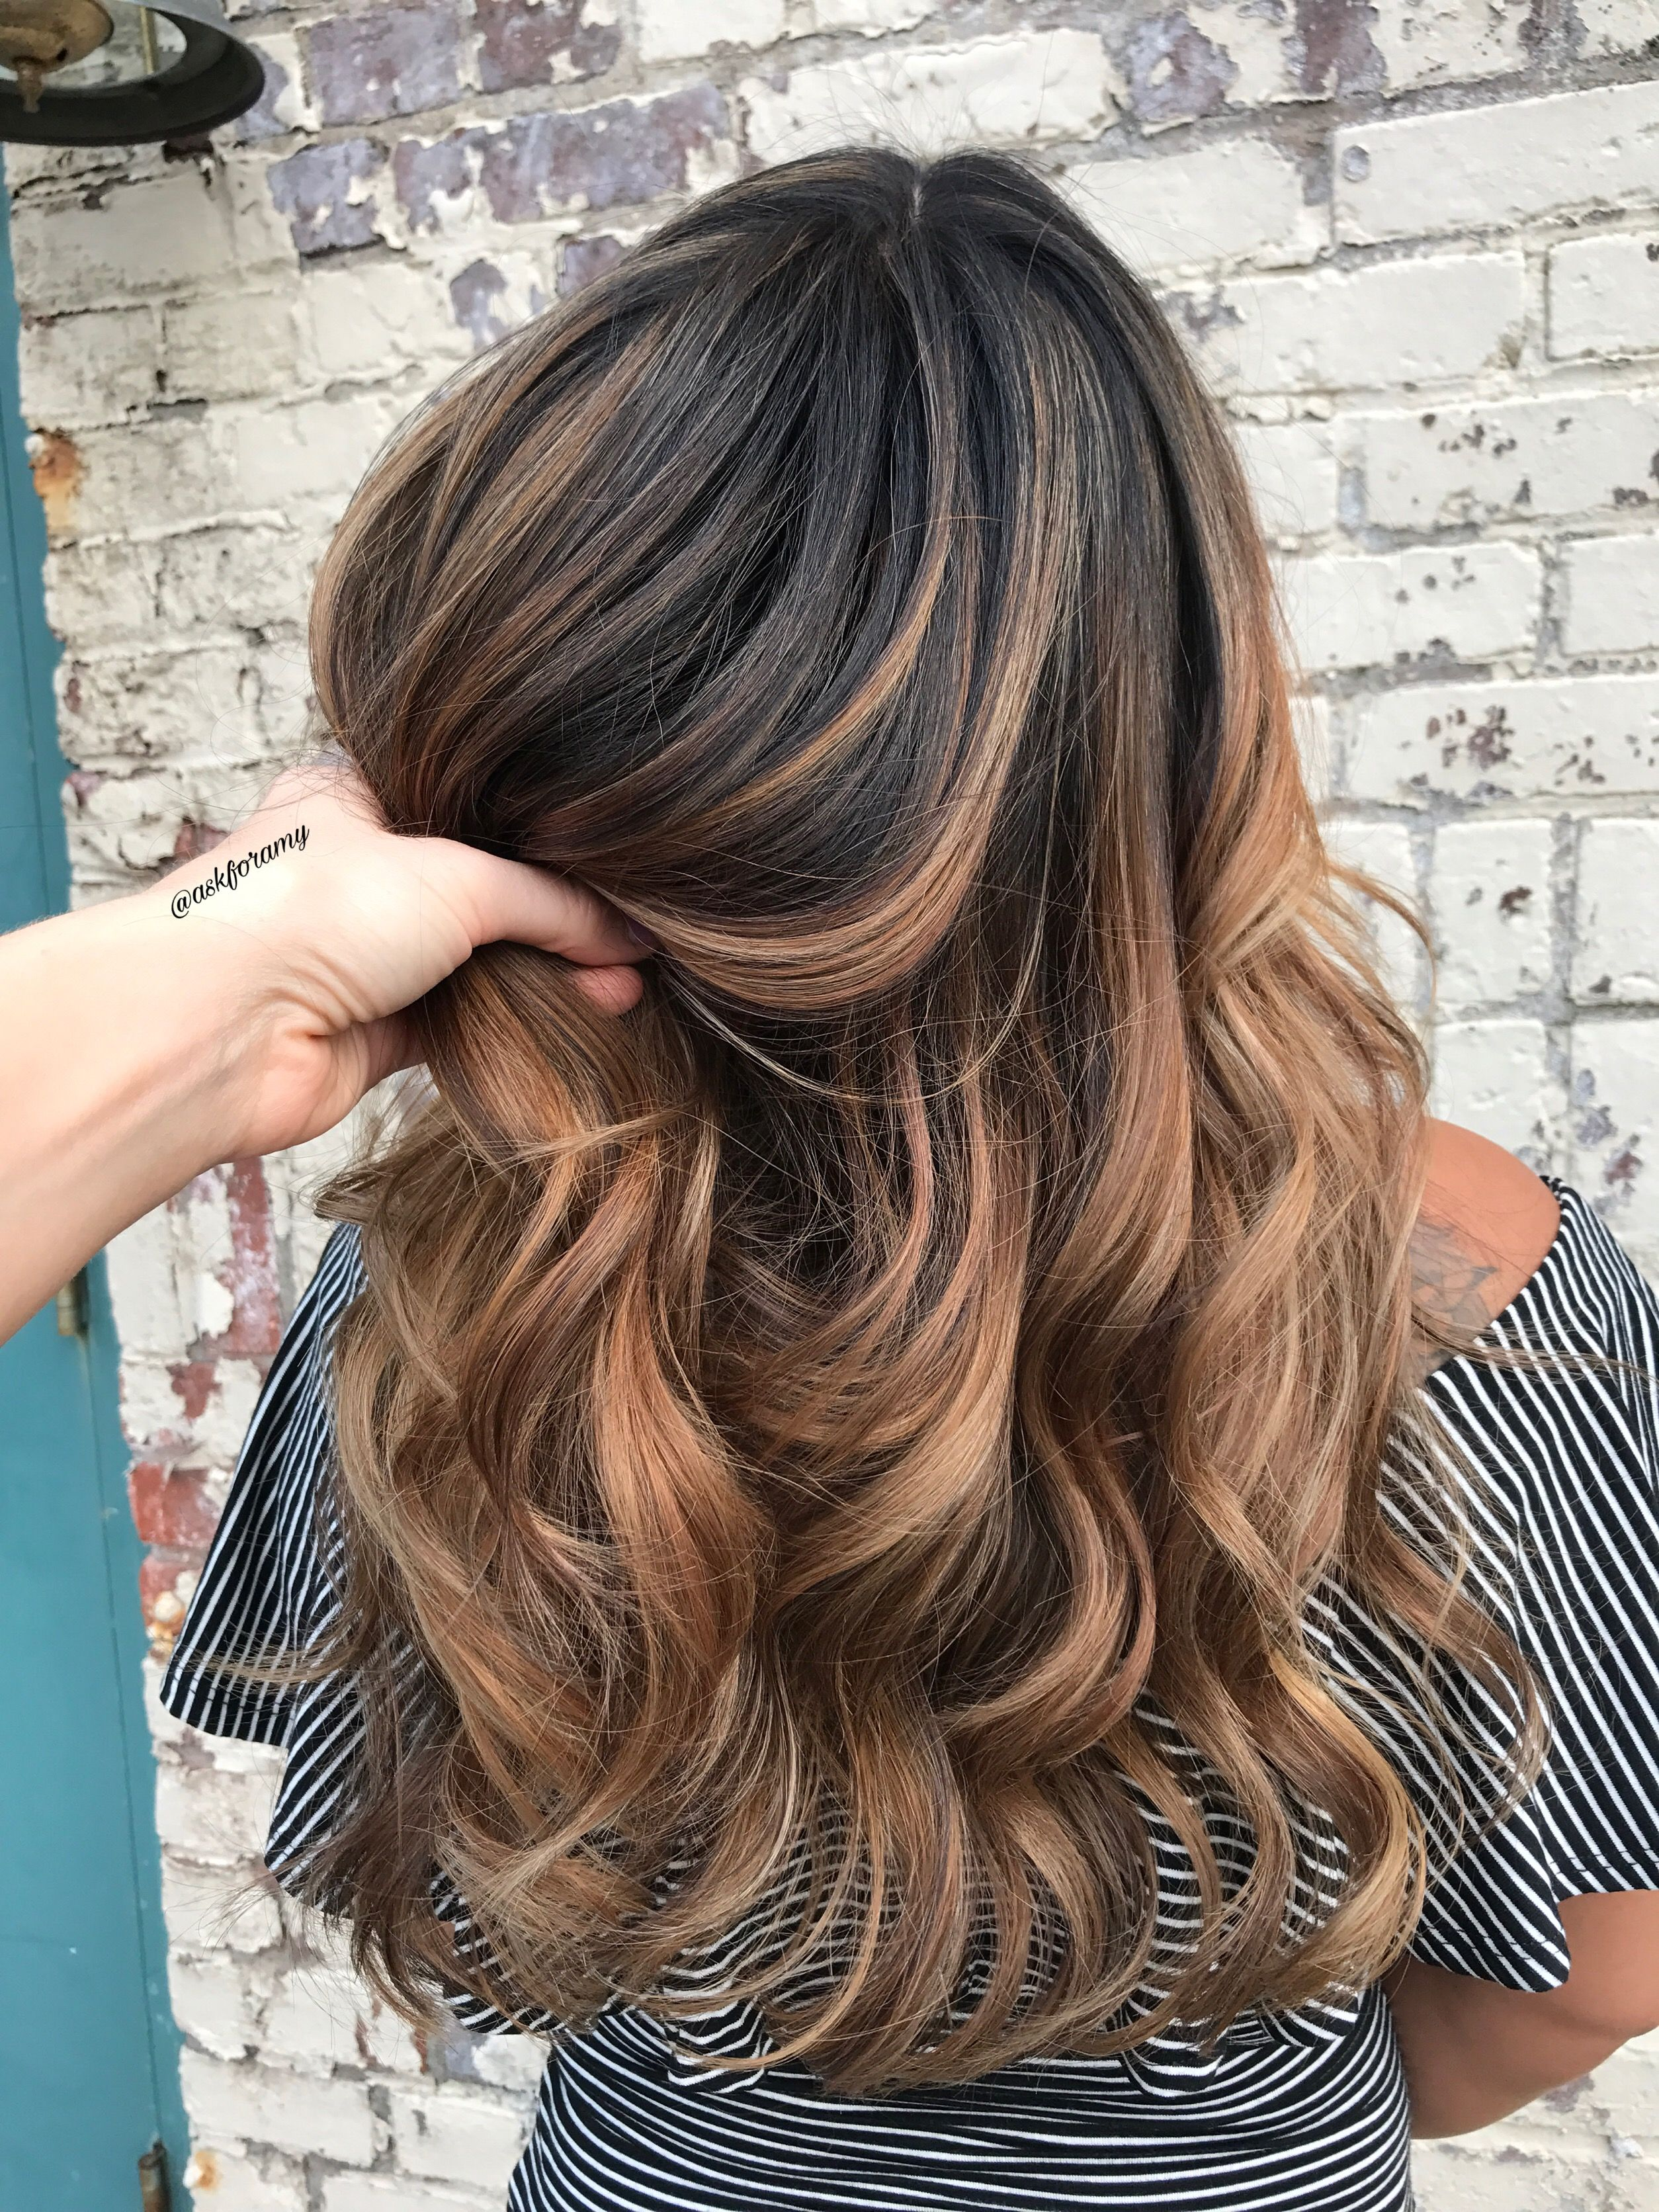 caramel balayage on dark hair by askforamy askforamy pinterest caramel balayage dark. Black Bedroom Furniture Sets. Home Design Ideas